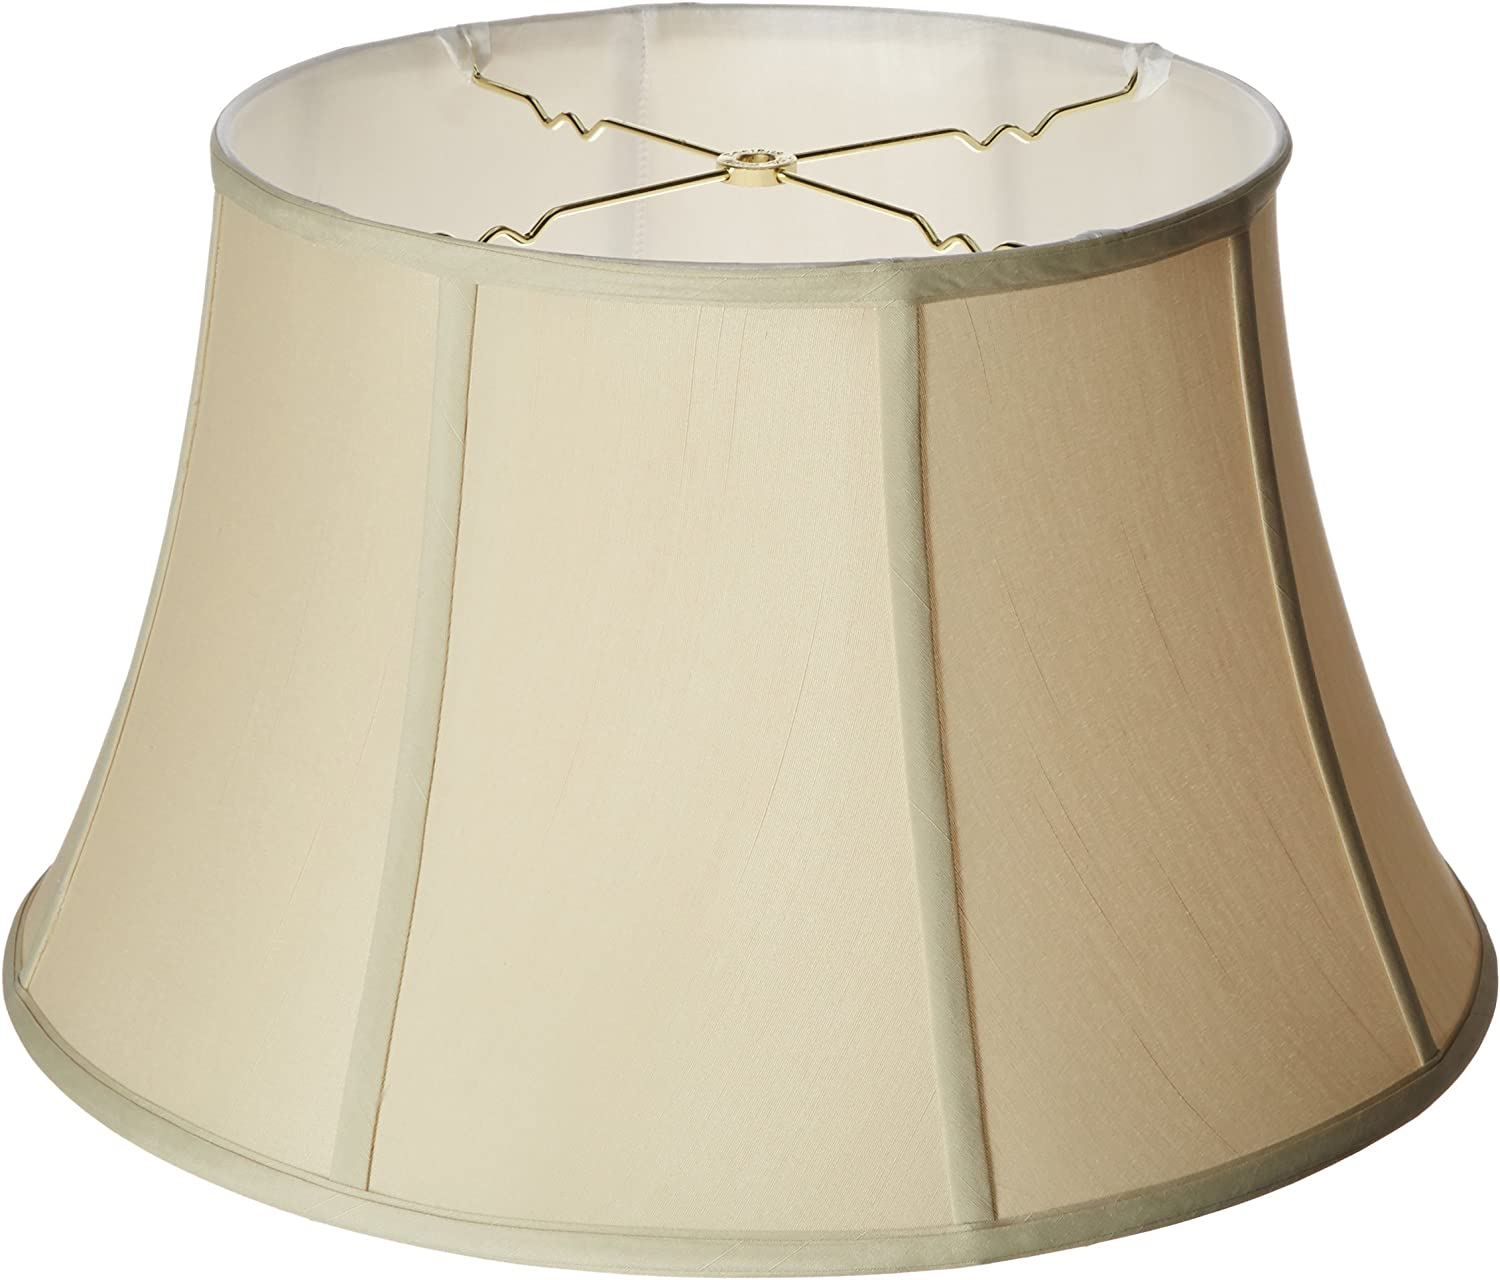 Royal Designs Shallow Drum Bell Billiotte Lamp Shade White 13 x 19 x 11.26 Inc BSO-711-19WH